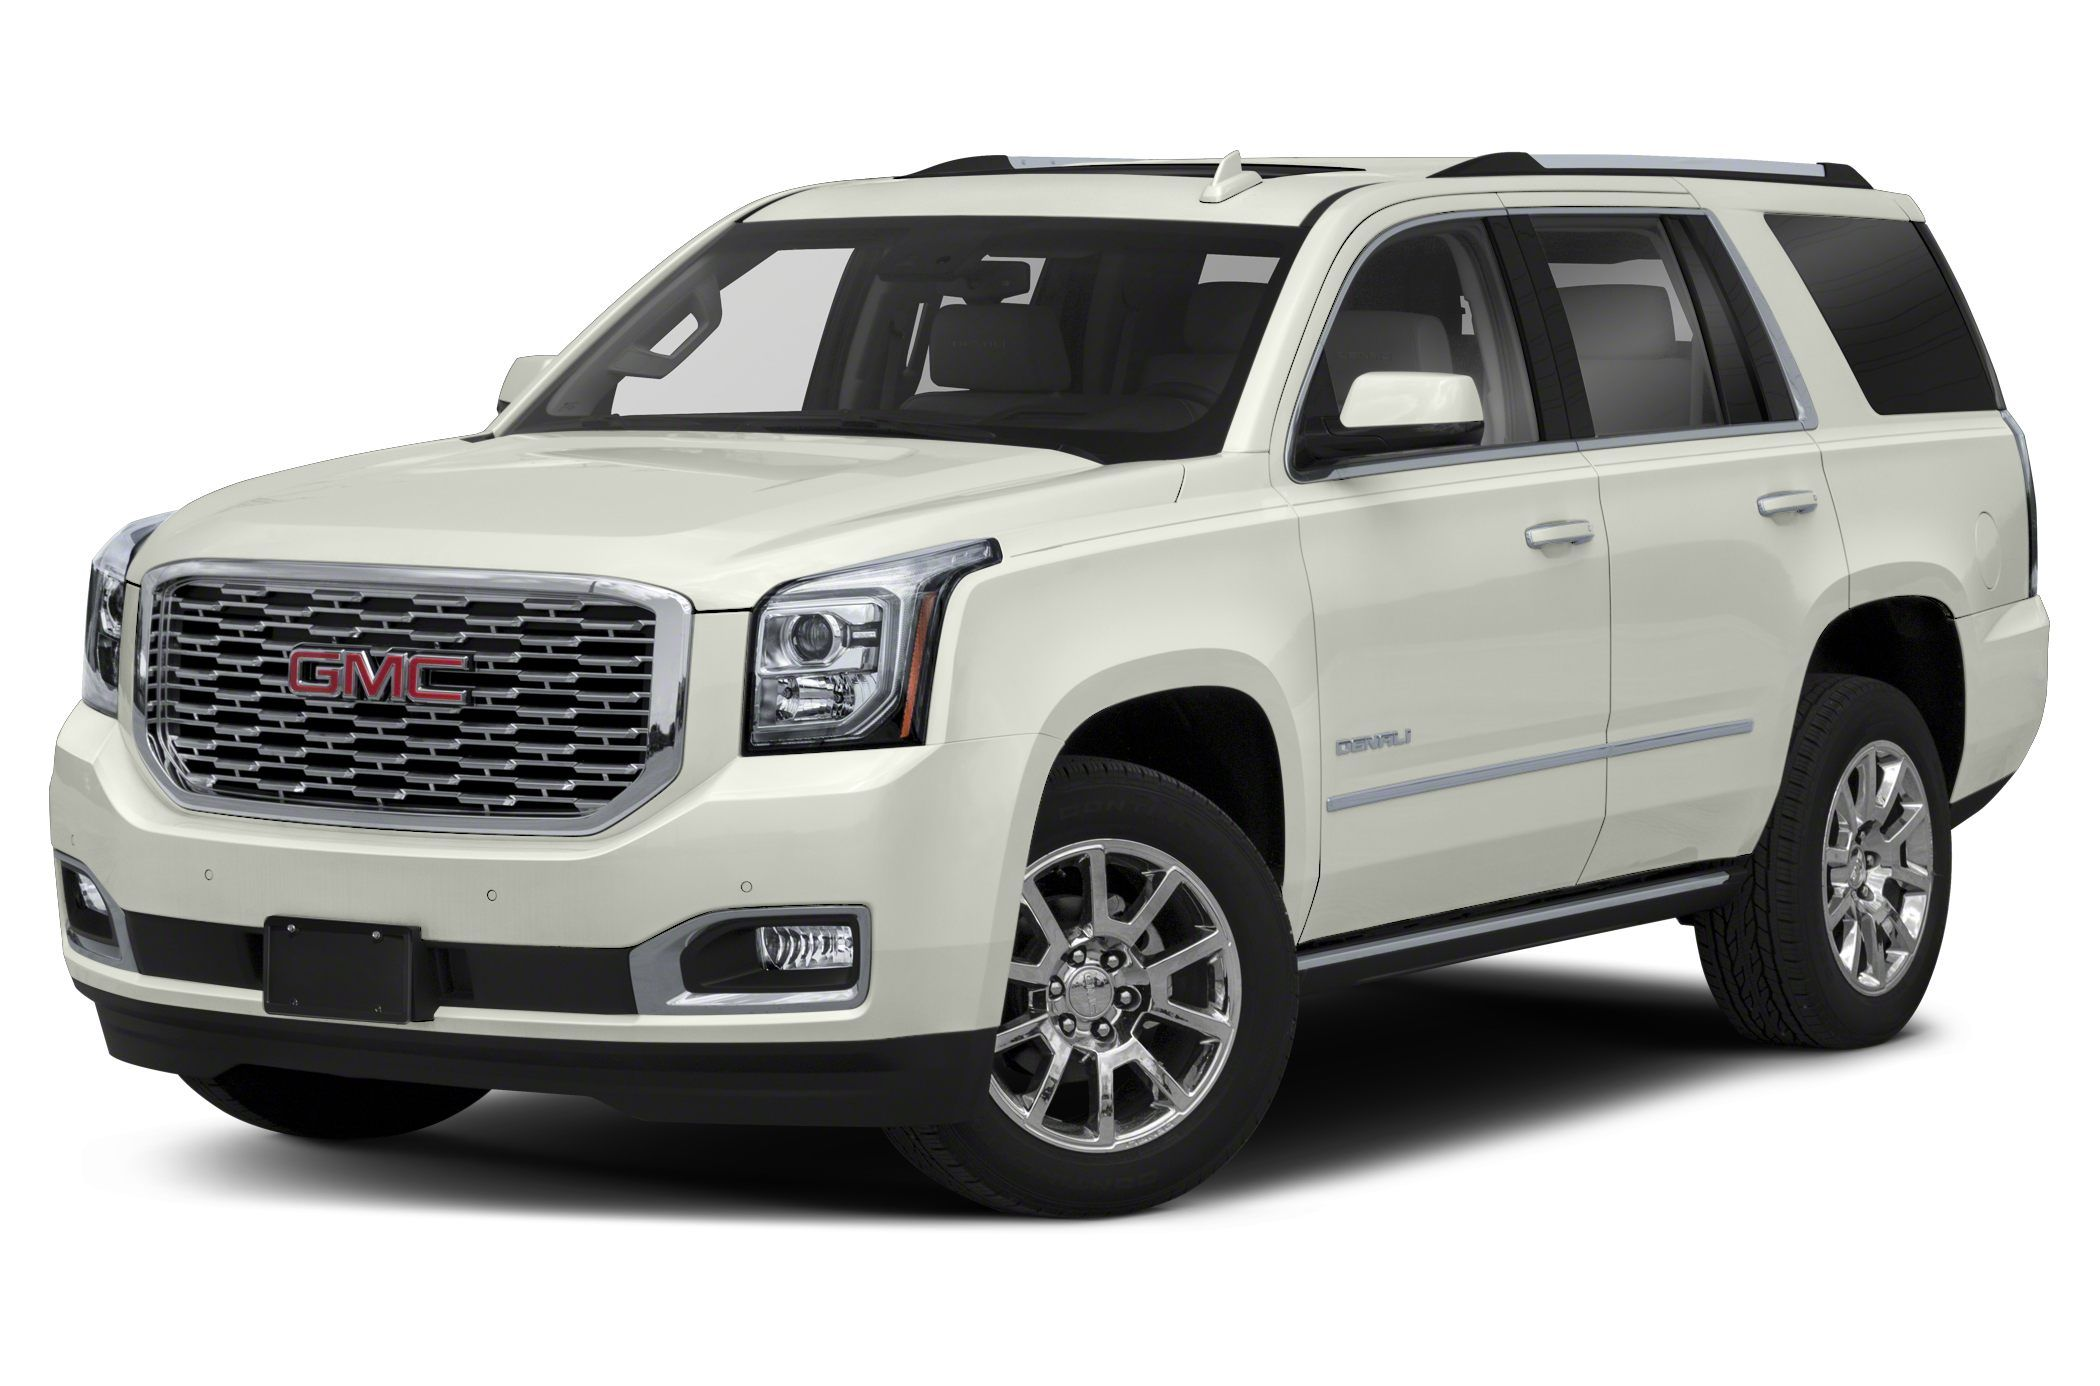 Gmc Denali Yukon 2020 Review And Price Check More At Http Car